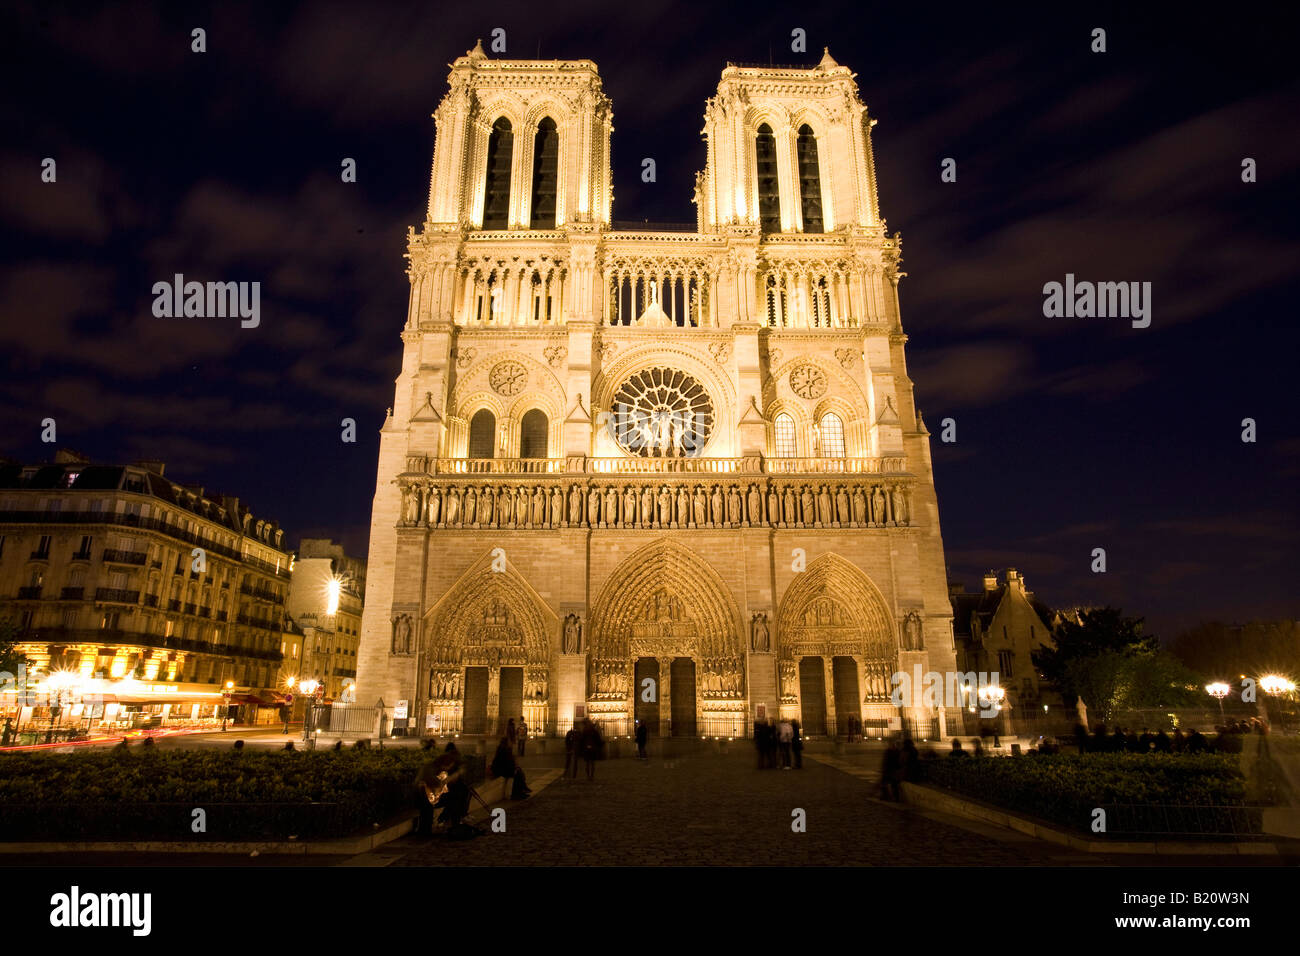 Notre Dame Cathedral floodlit illuminated illuminations in evening night light Paris France Europe - Stock Image